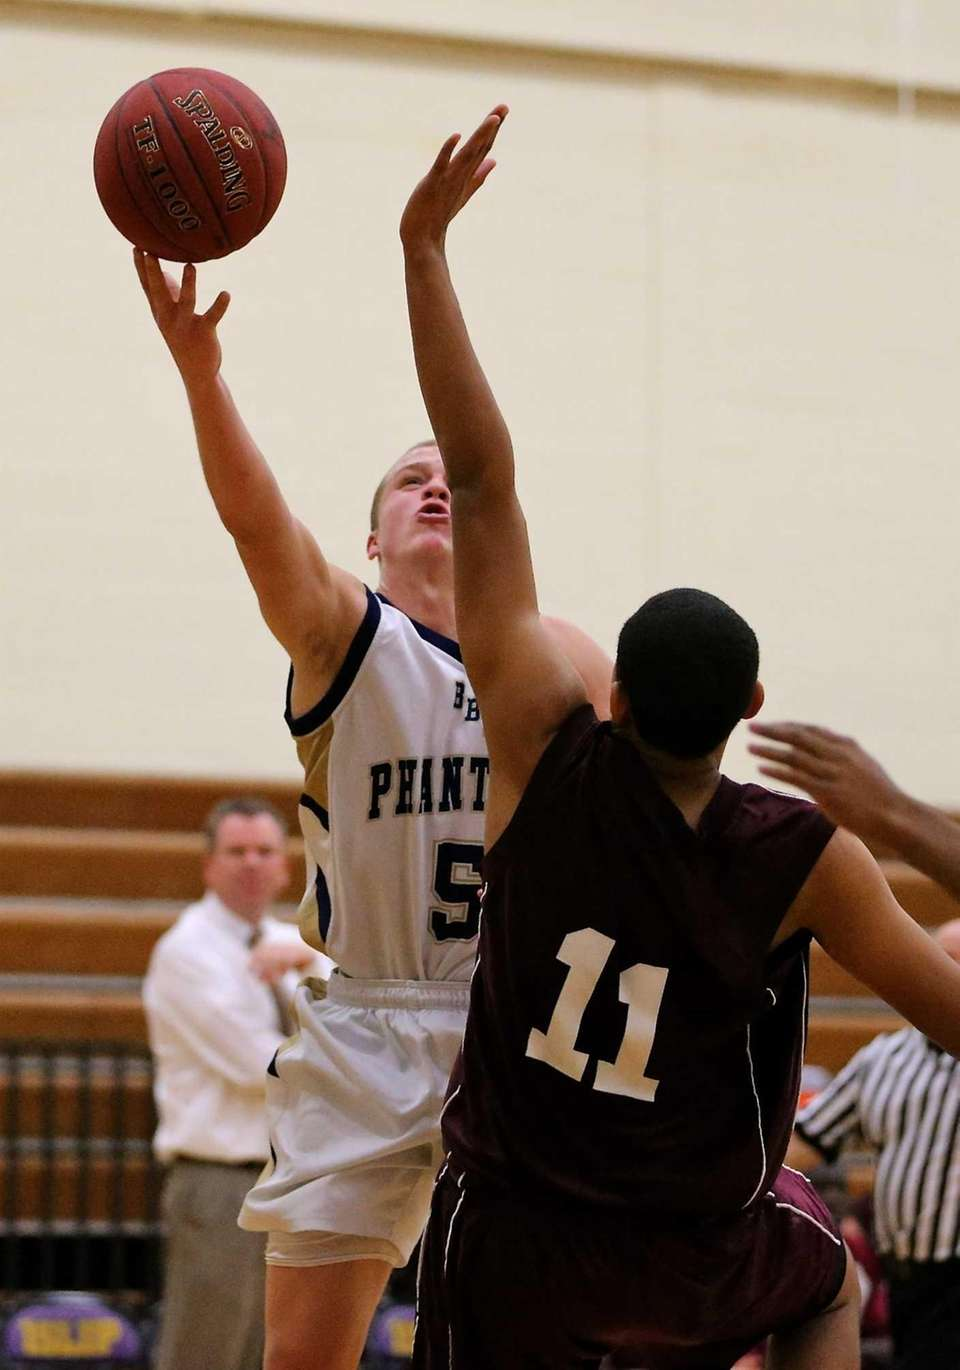 Bayport's Conner Panzner drives the baseline with a